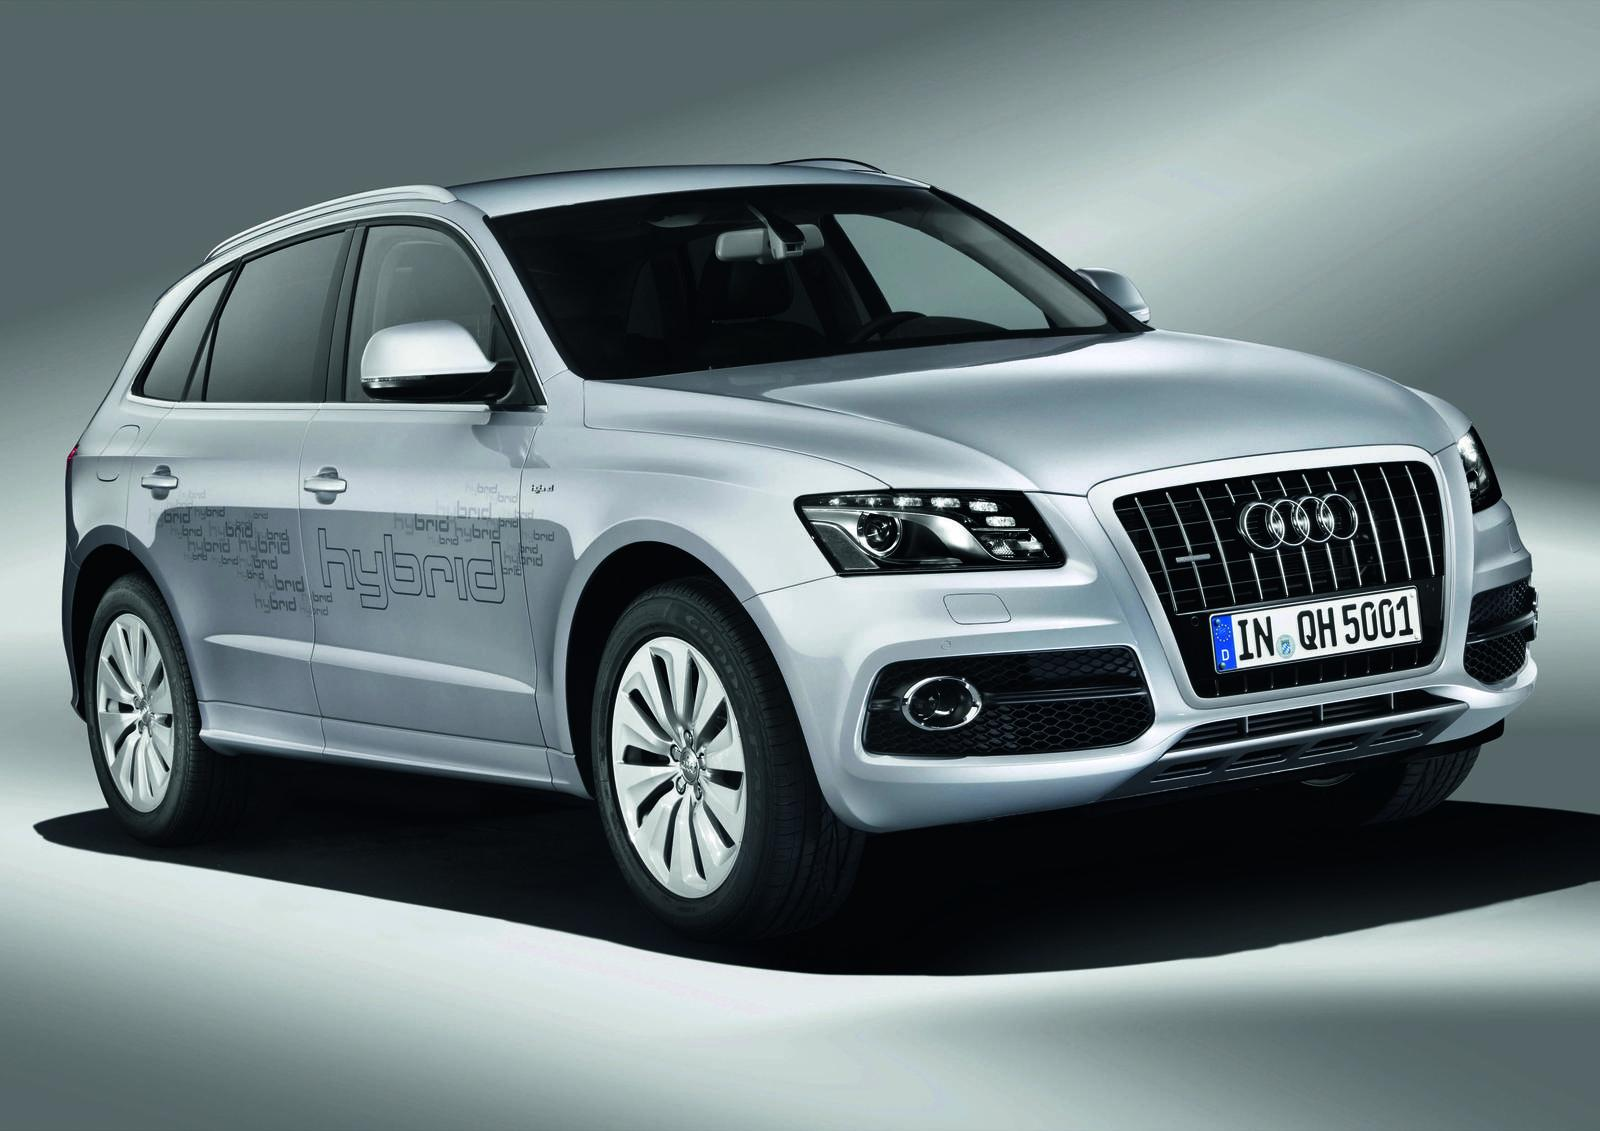 2011 audi q5 hybrid quattro details spec new car used car reviews picture